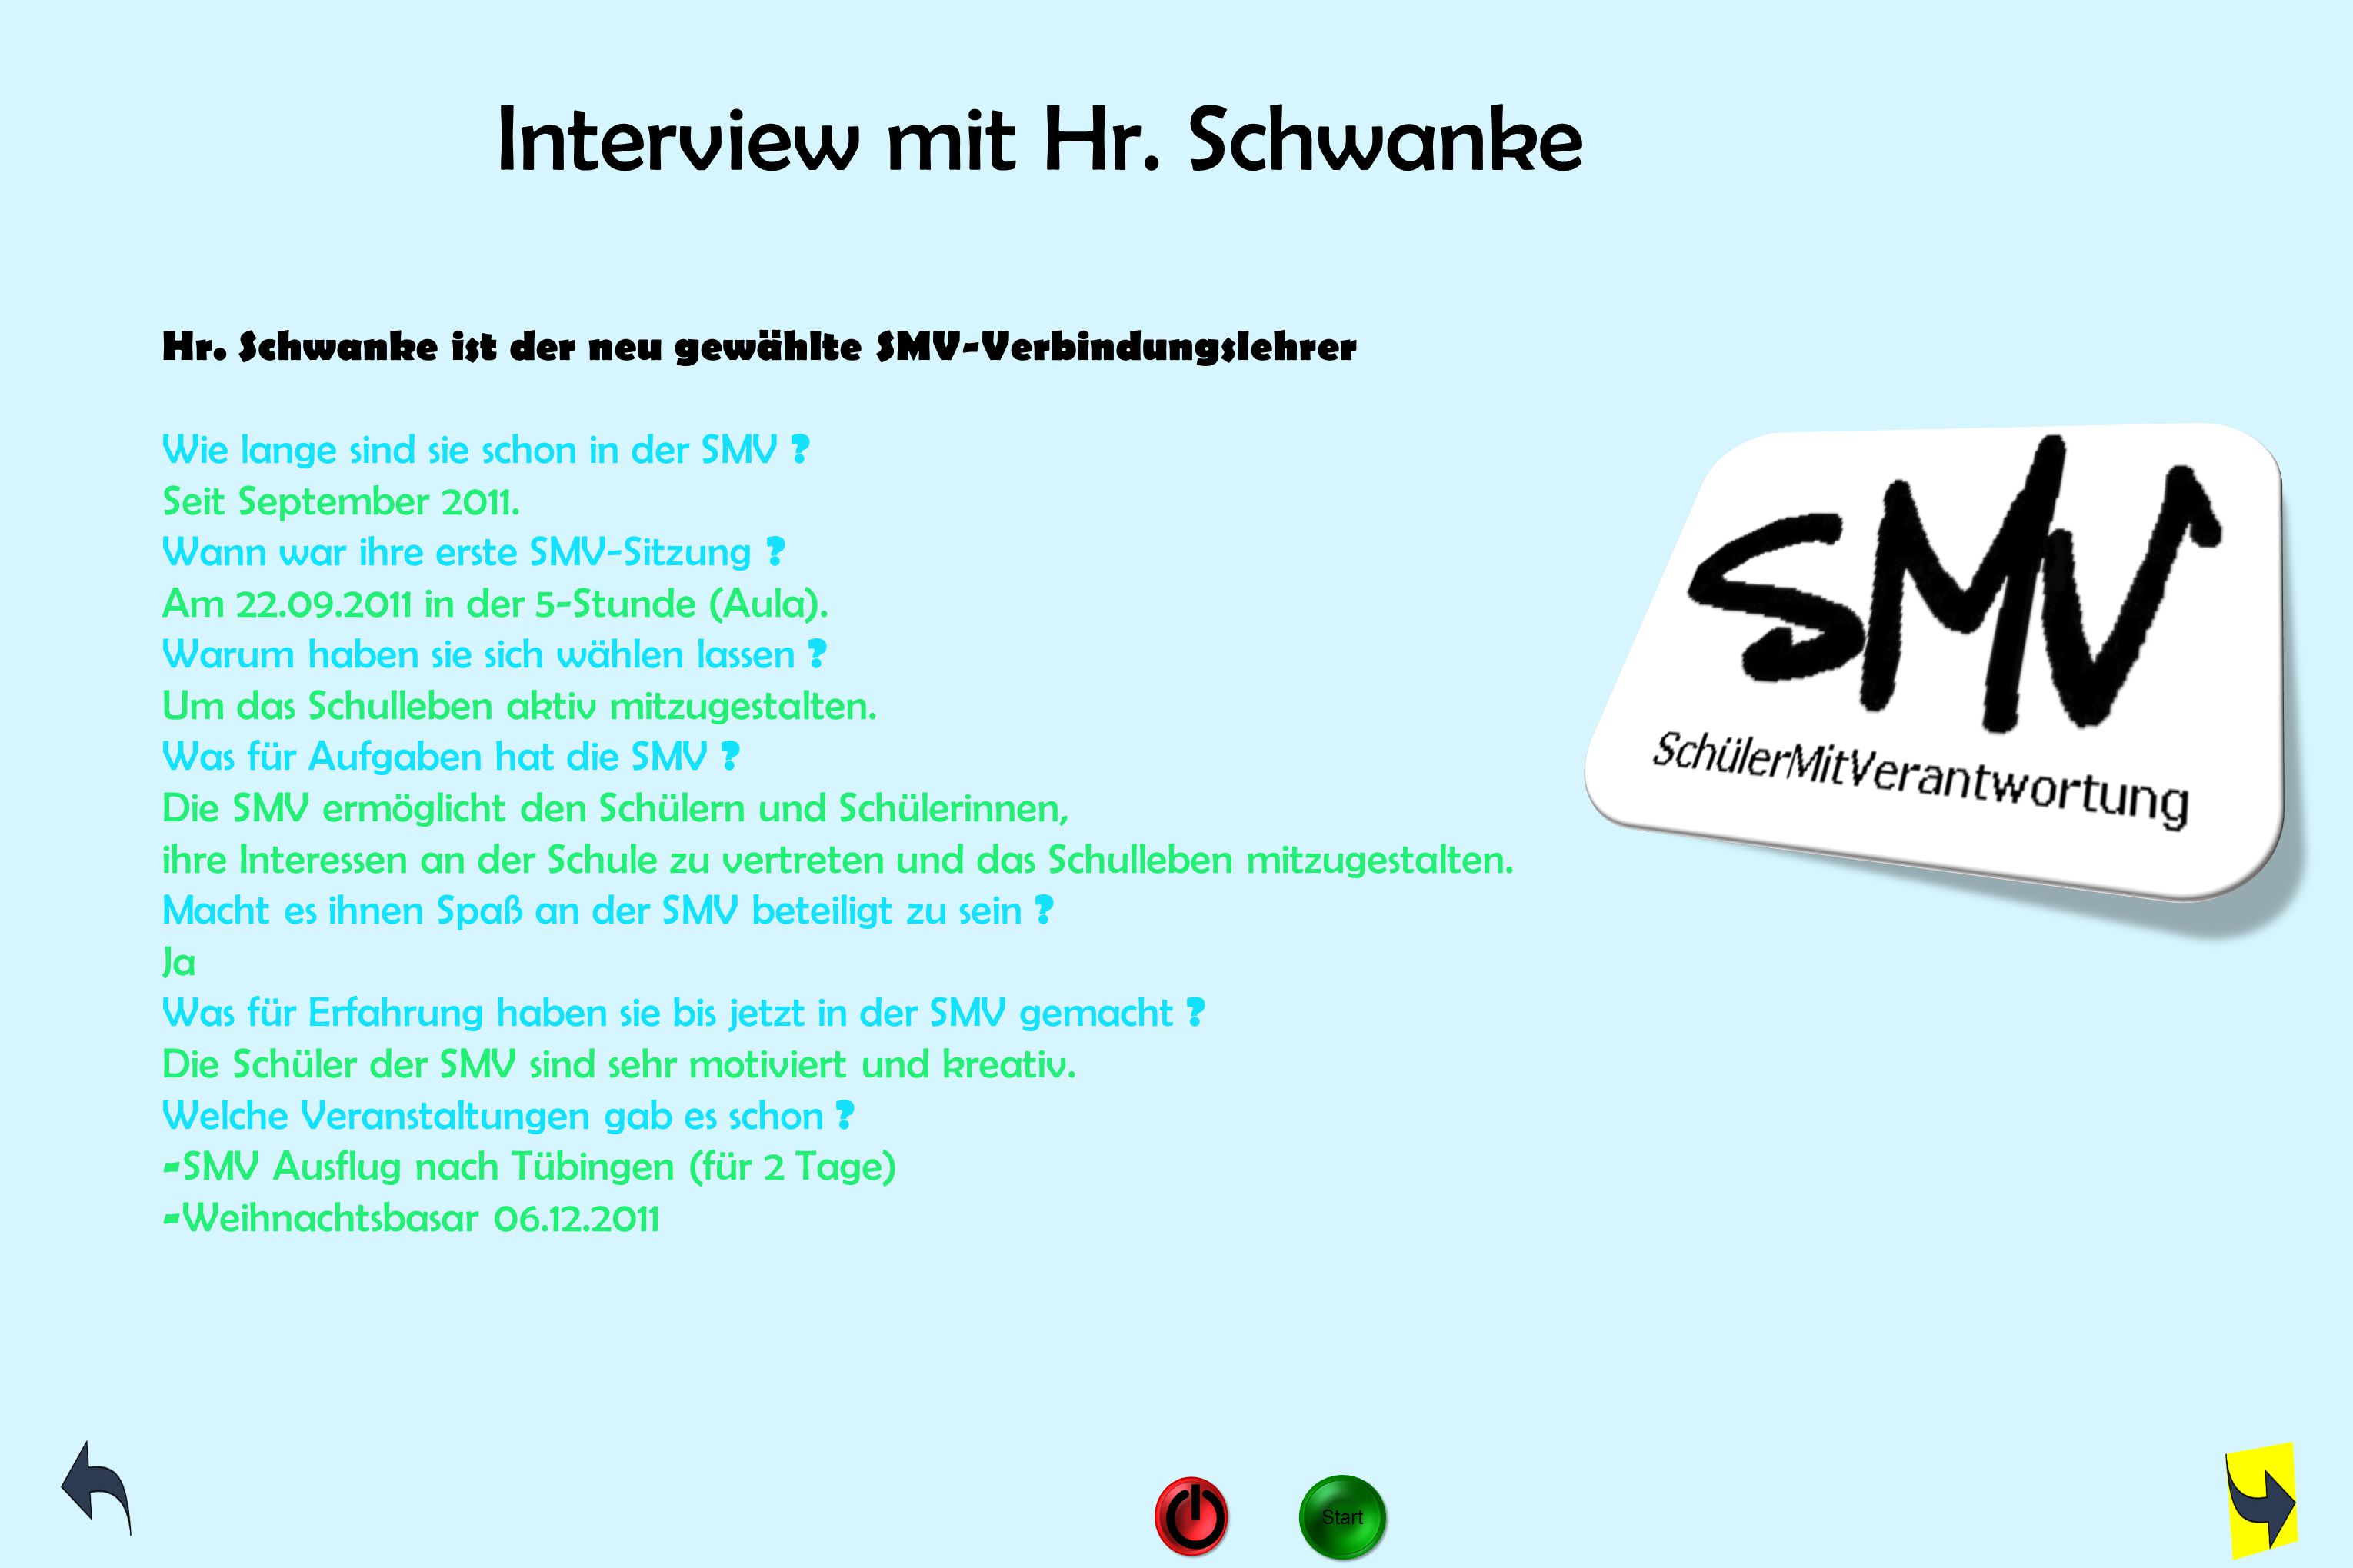 Interview mit Hr. Schwanke